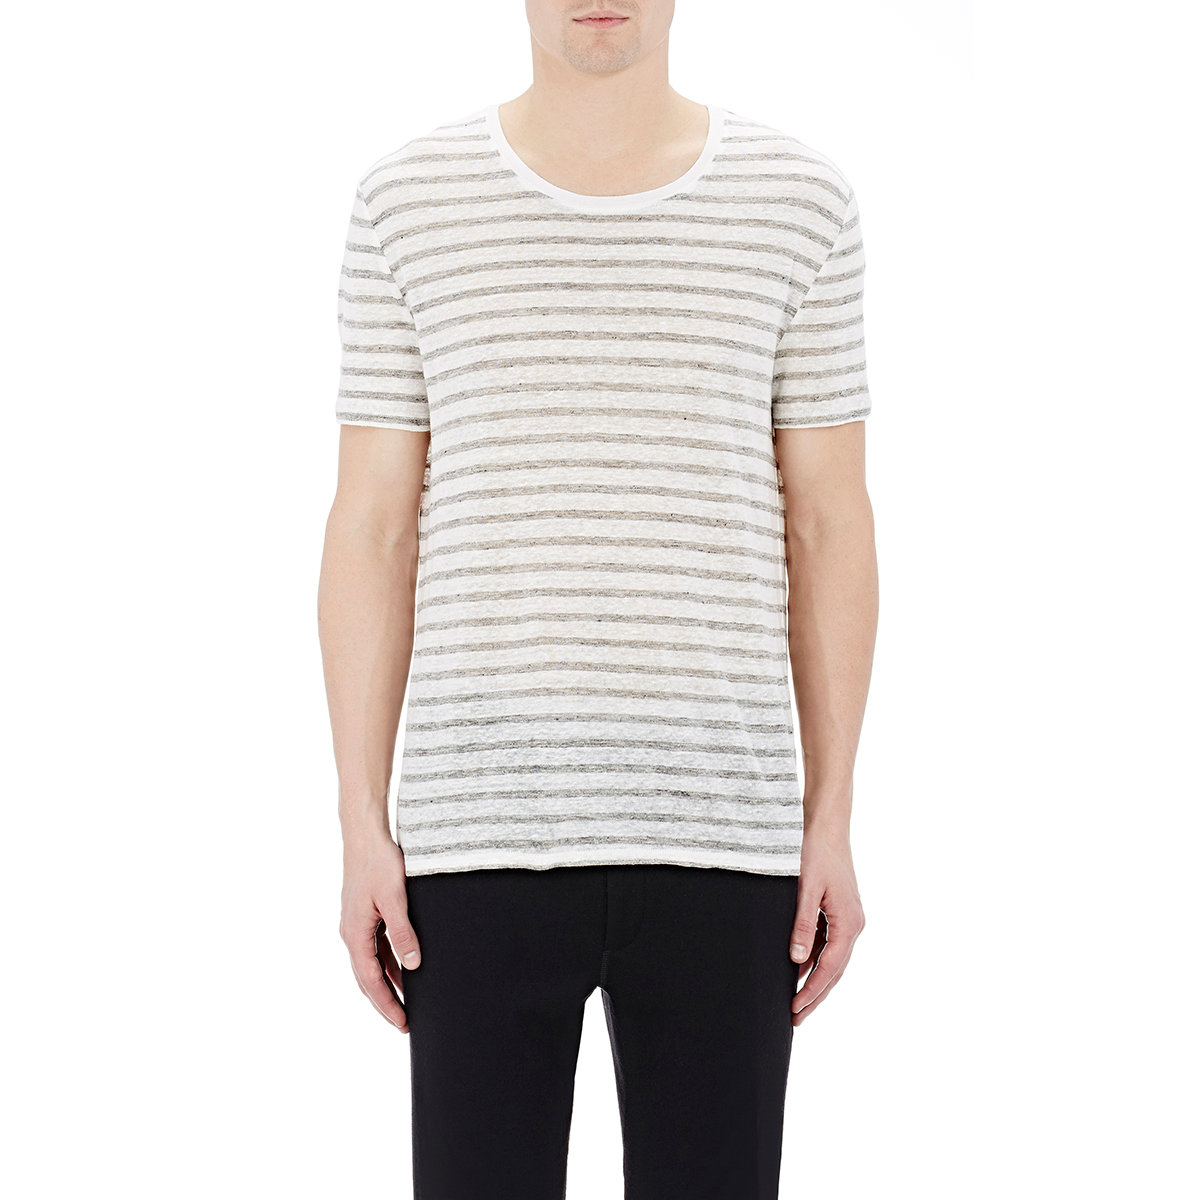 Atm men 39 s striped jersey t shirt in gray for men lyst for Grey striped t shirt